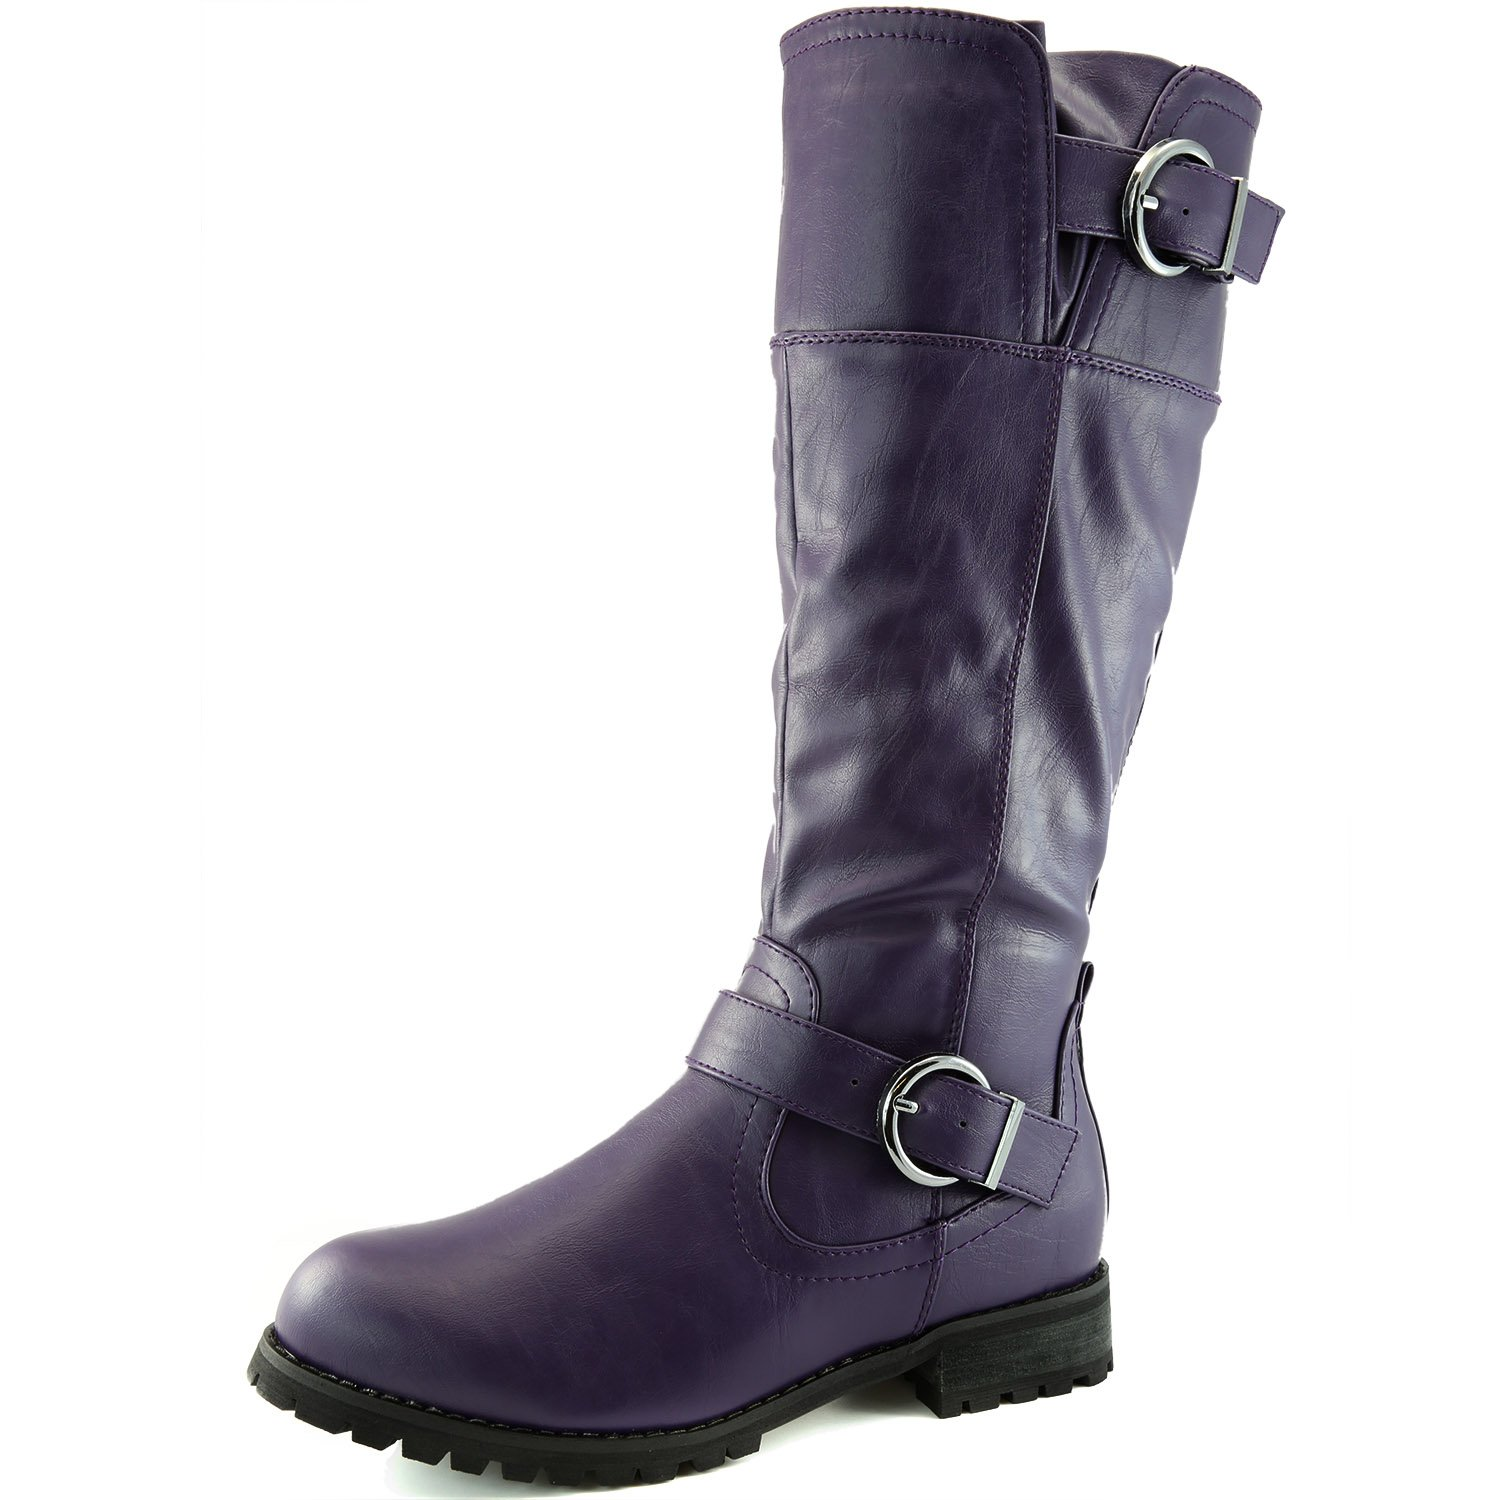 DailyShoes Women's Round Toe Ankle Double Buckle Military Combat Boots, Combat-Zero Purple PU 7